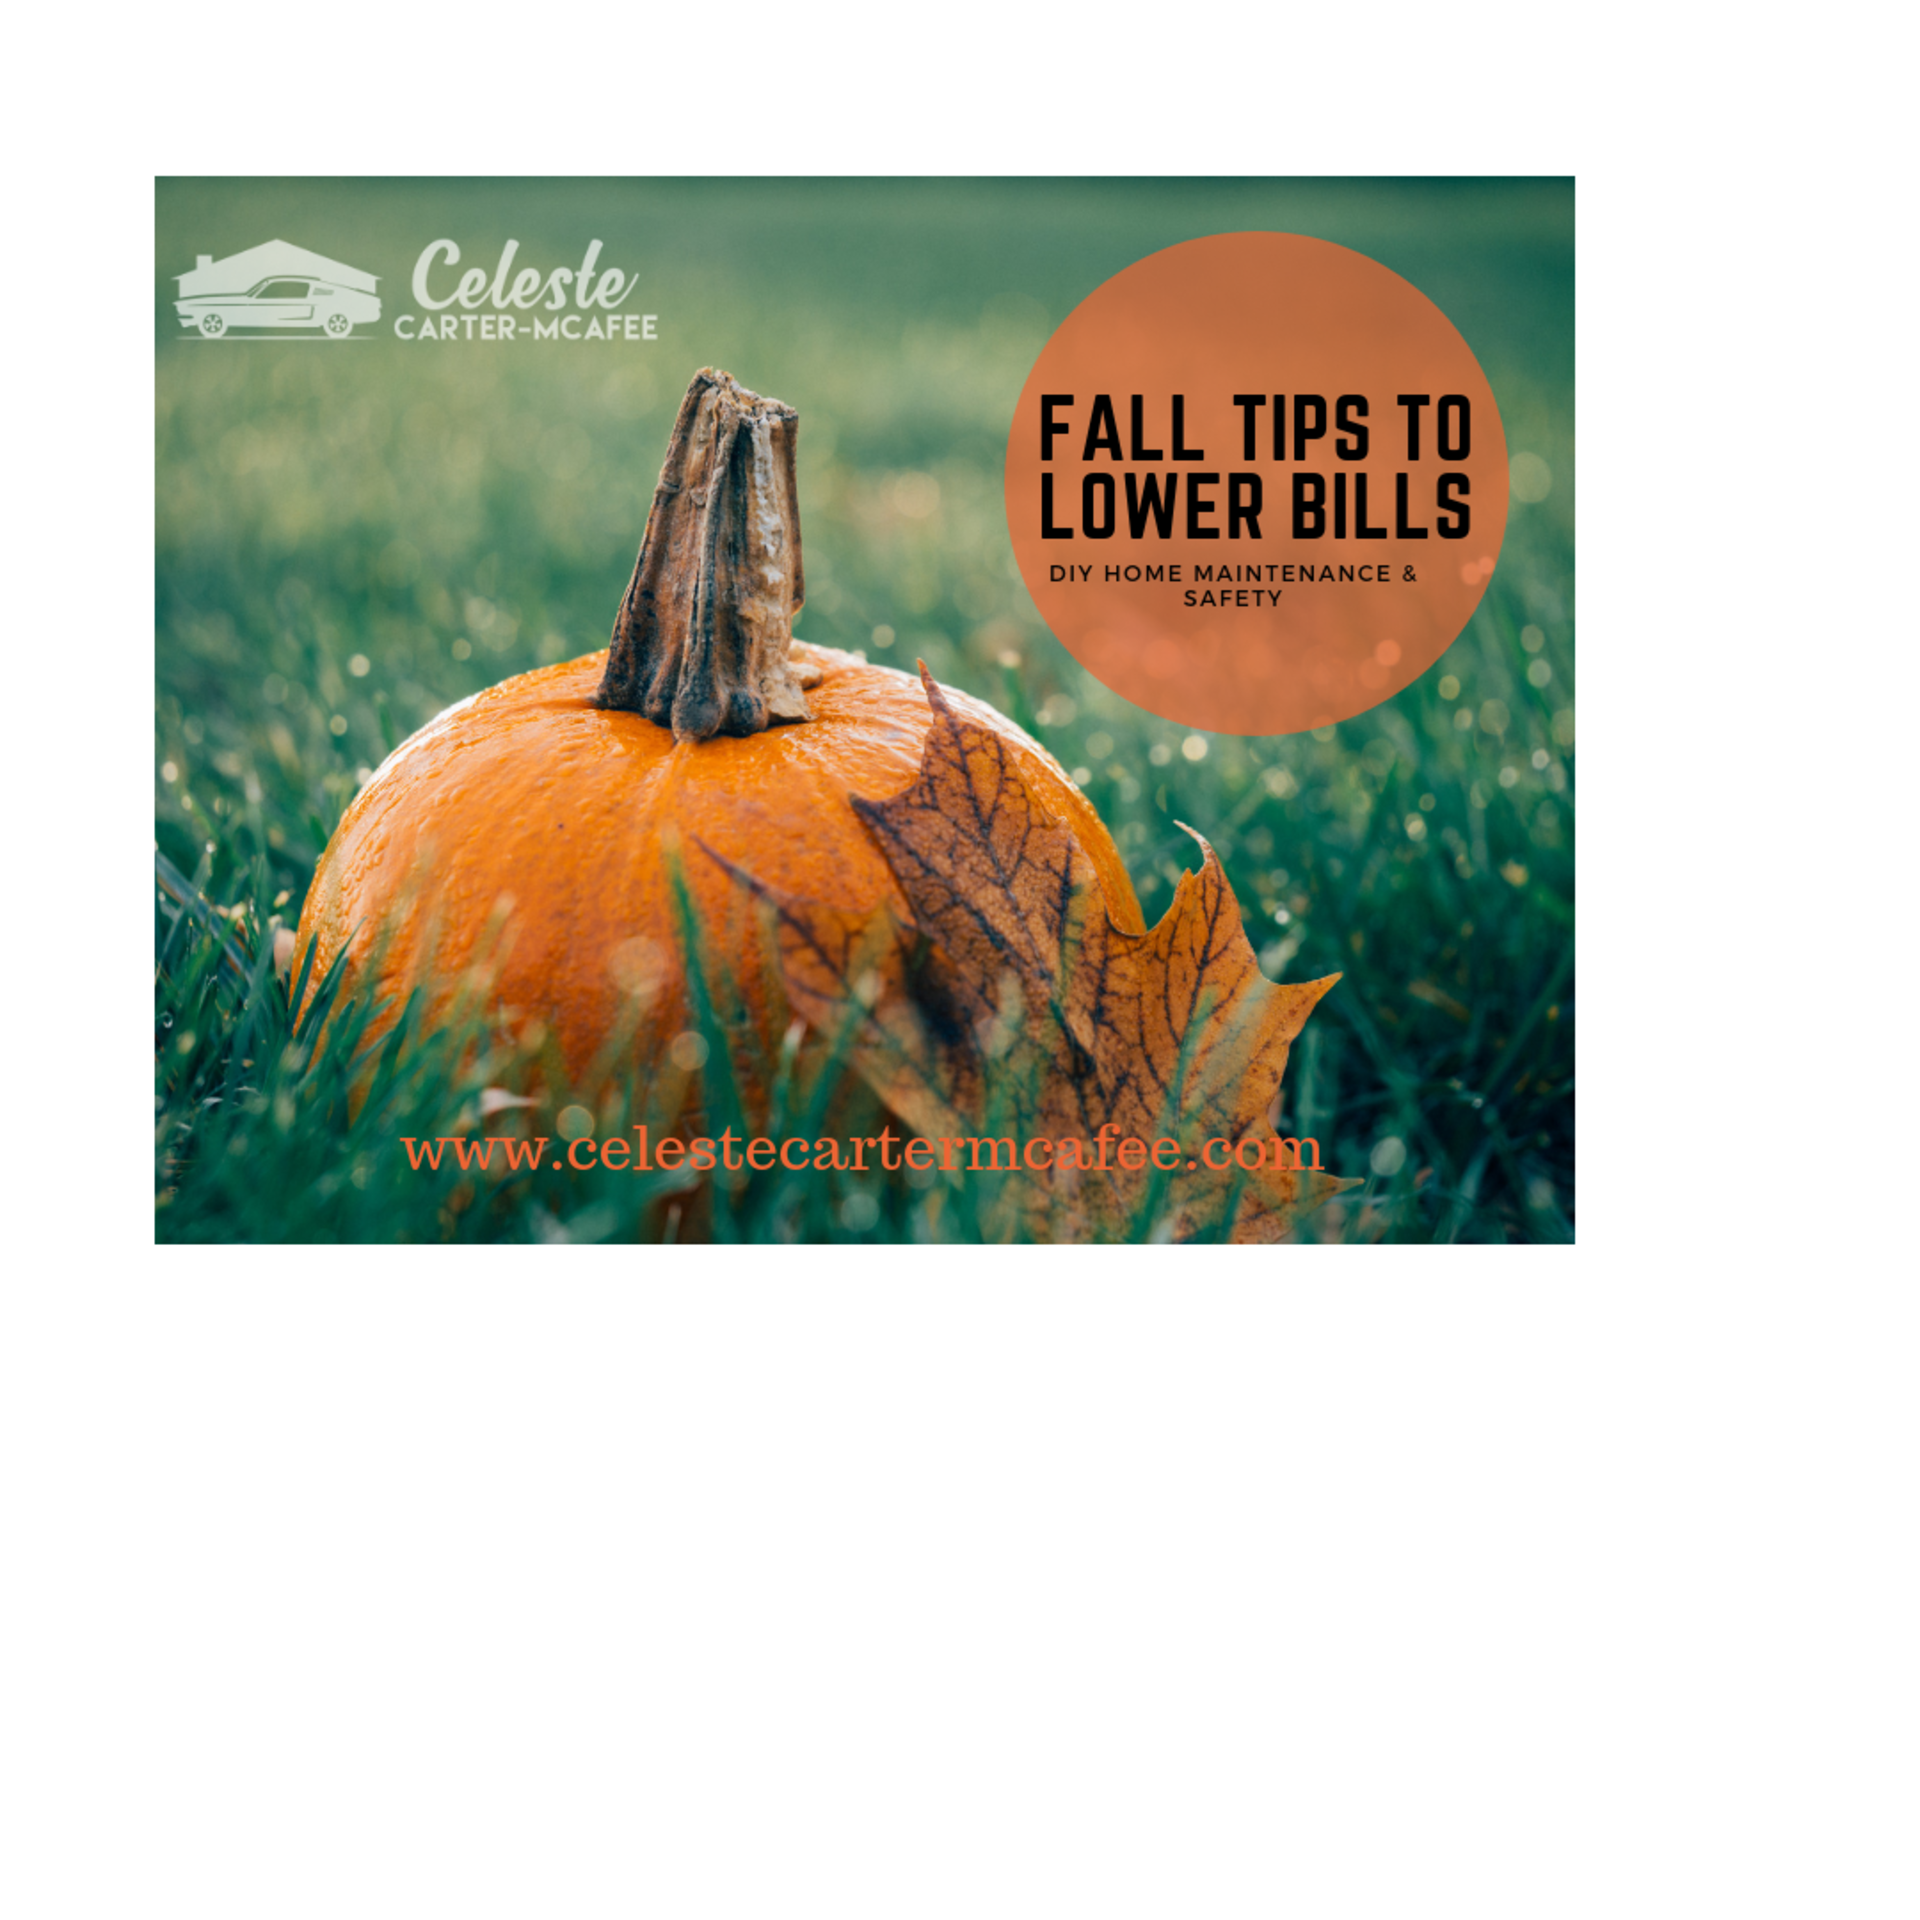 Fall home projects to keep your home maintenance bills down and keep you safer. Celeste Carter-McAfee, Keller Williams Legacy Group!